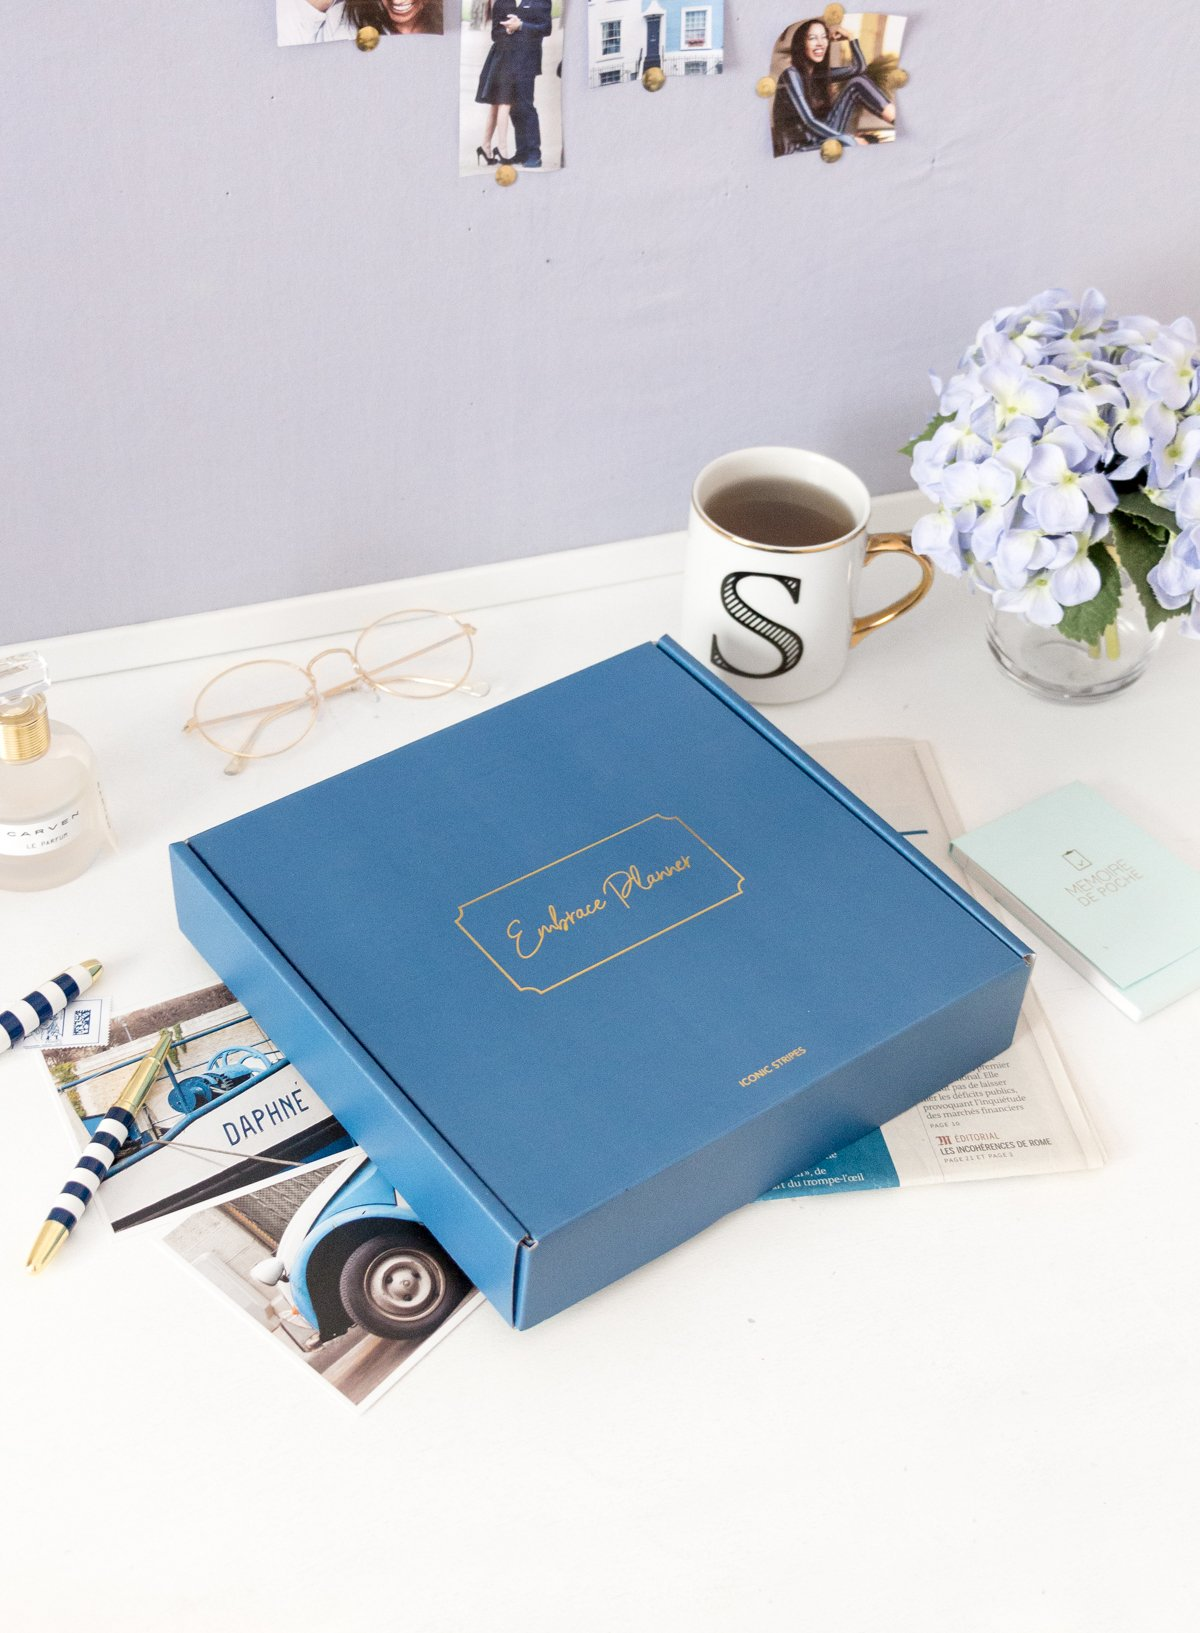 Kit Embrace 2020 - ICONIC STRIPES Planner 2020 - Agenda Chrétien - Embrace Planner